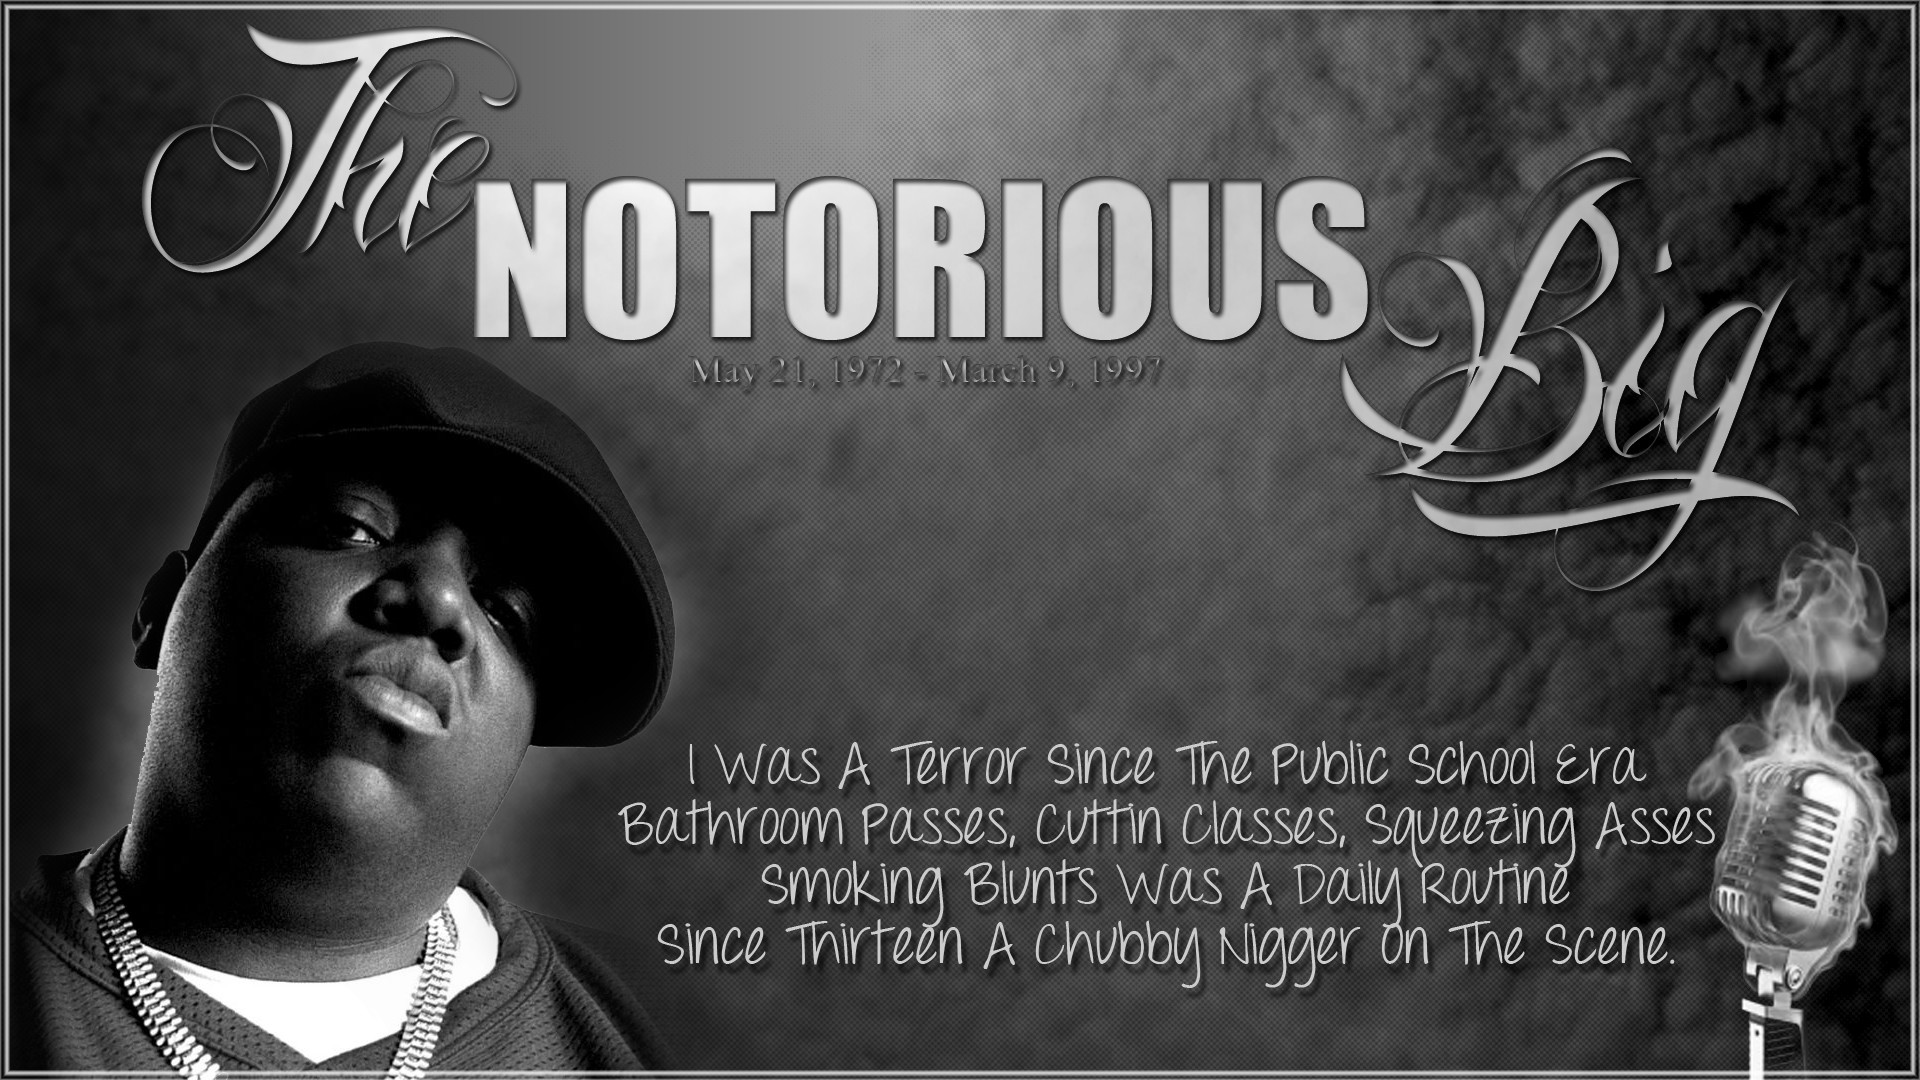 Notorious Big wallpapers | Notorious Big background